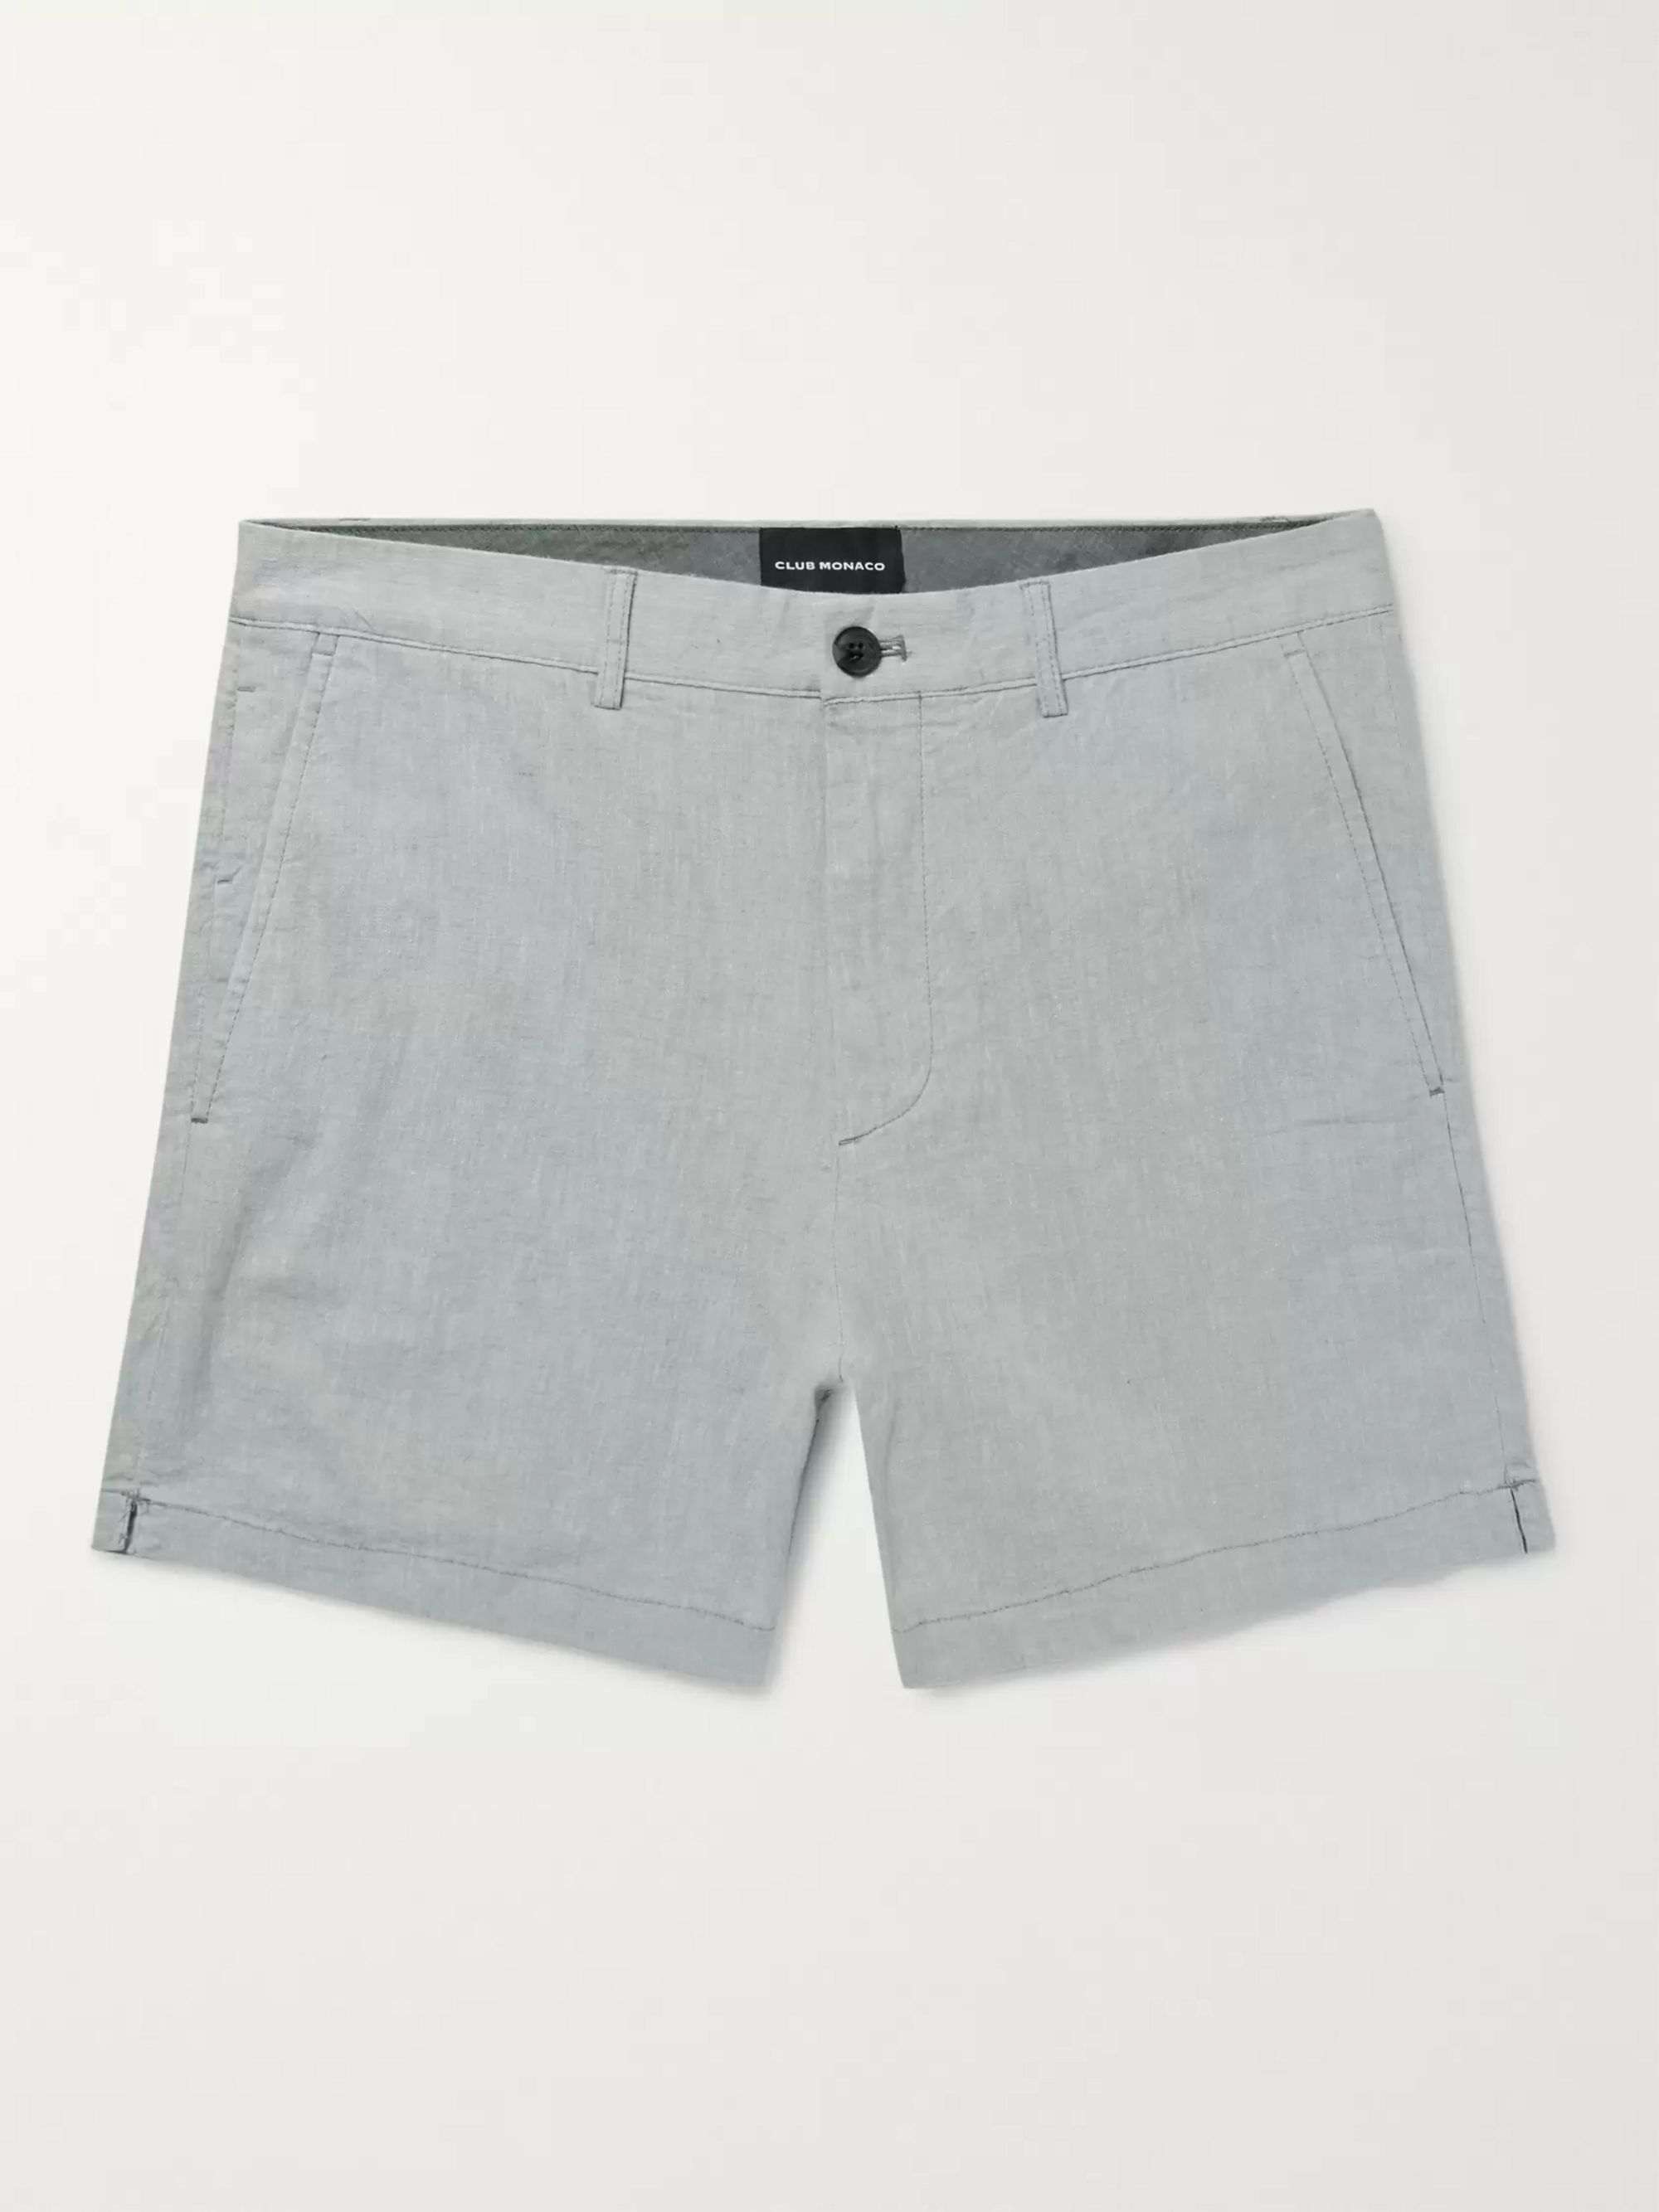 Jax Slim Fit Linen Blend Chambray Shorts by Club Monaco